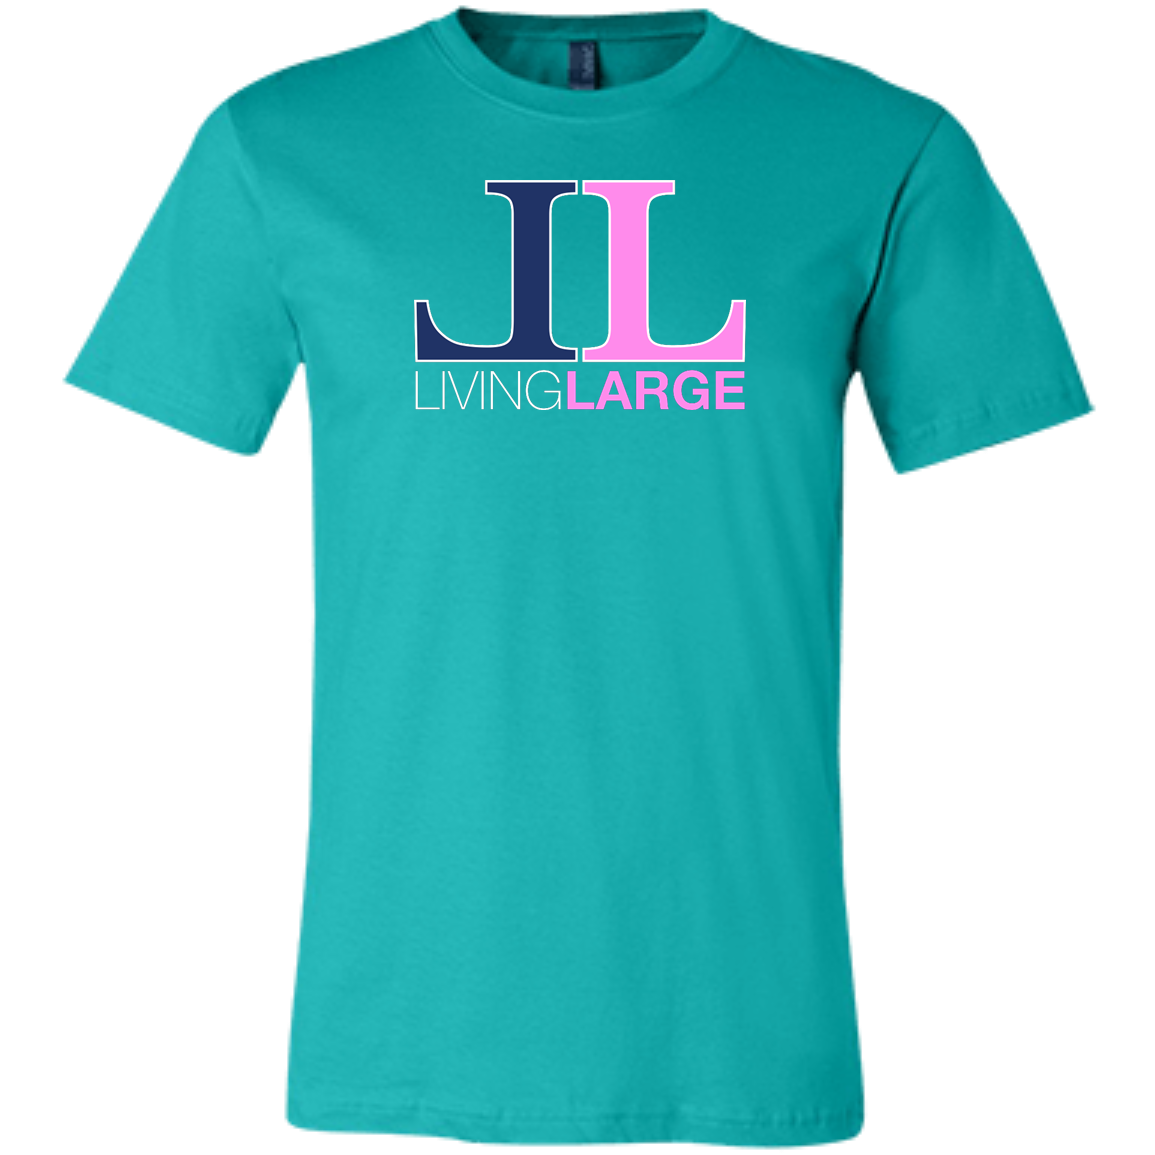 Living Large - The Blissful Bella Elizabeth Collection Unisex Short-Sleeve T-Shirt